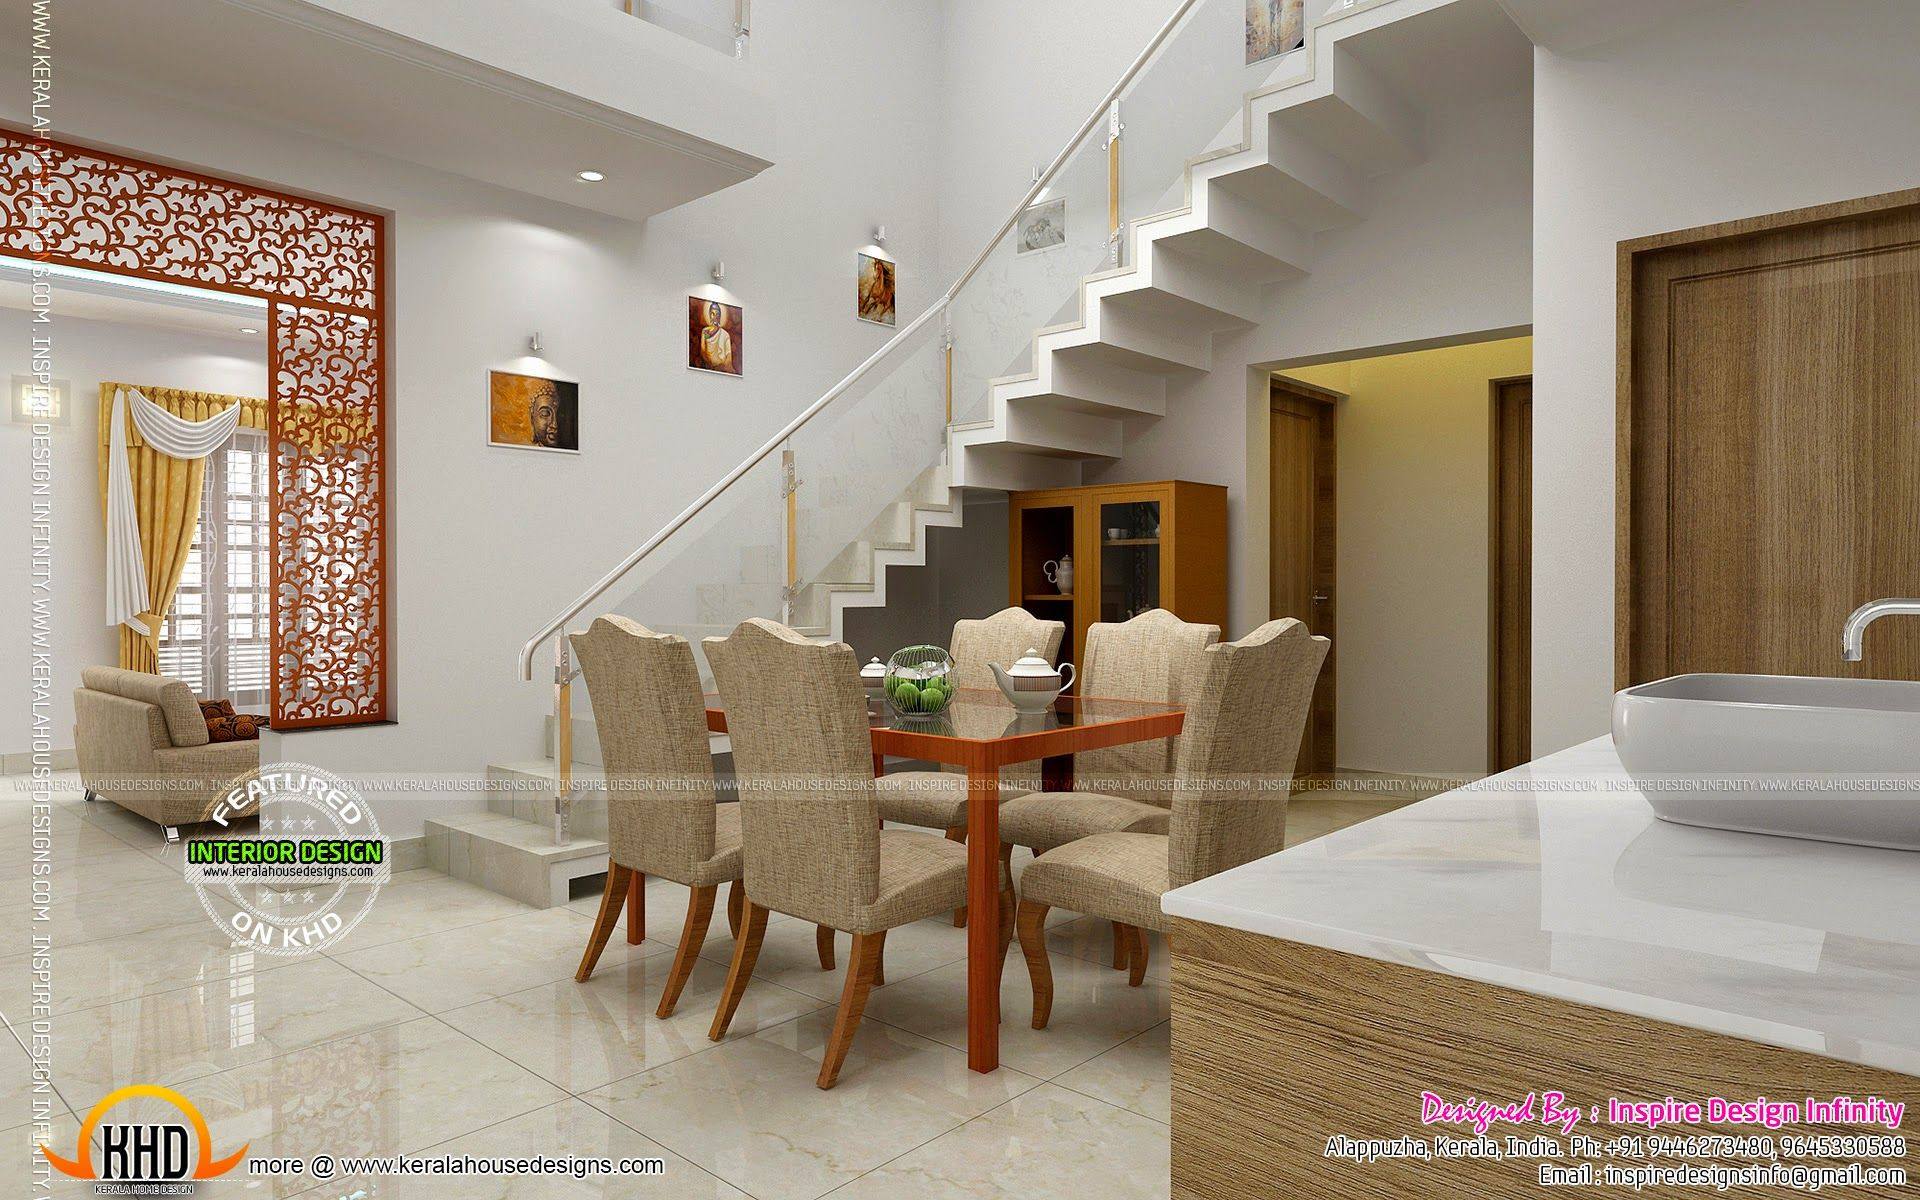 Dining room designs beautiful homes interiors house for Kerala home interior